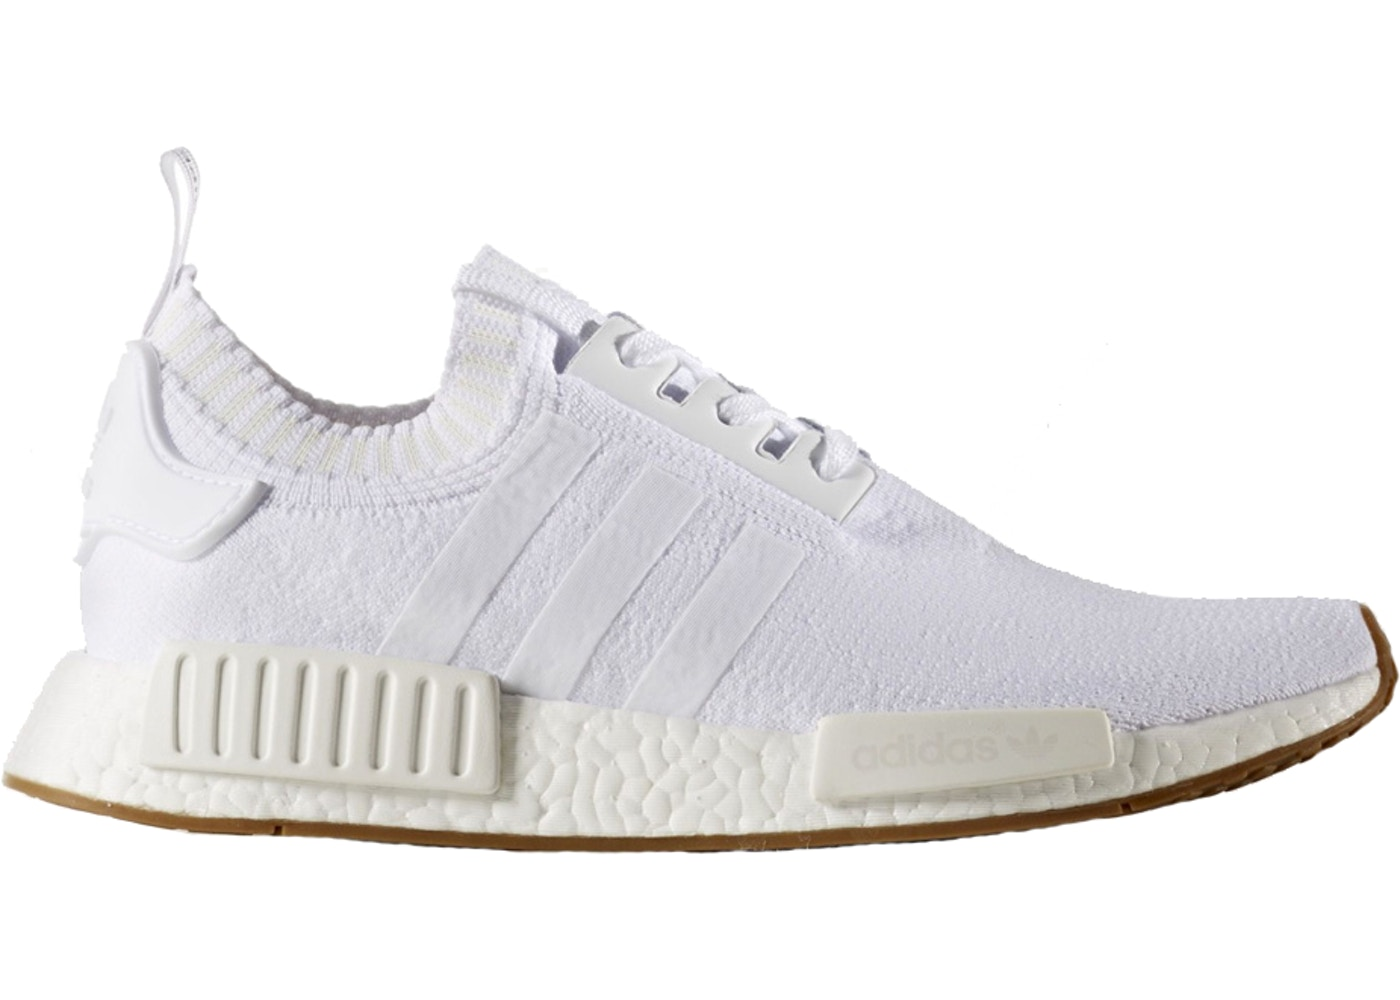 490f7b03085c4 adidas NMD R1 Gum Pack White - BY1888